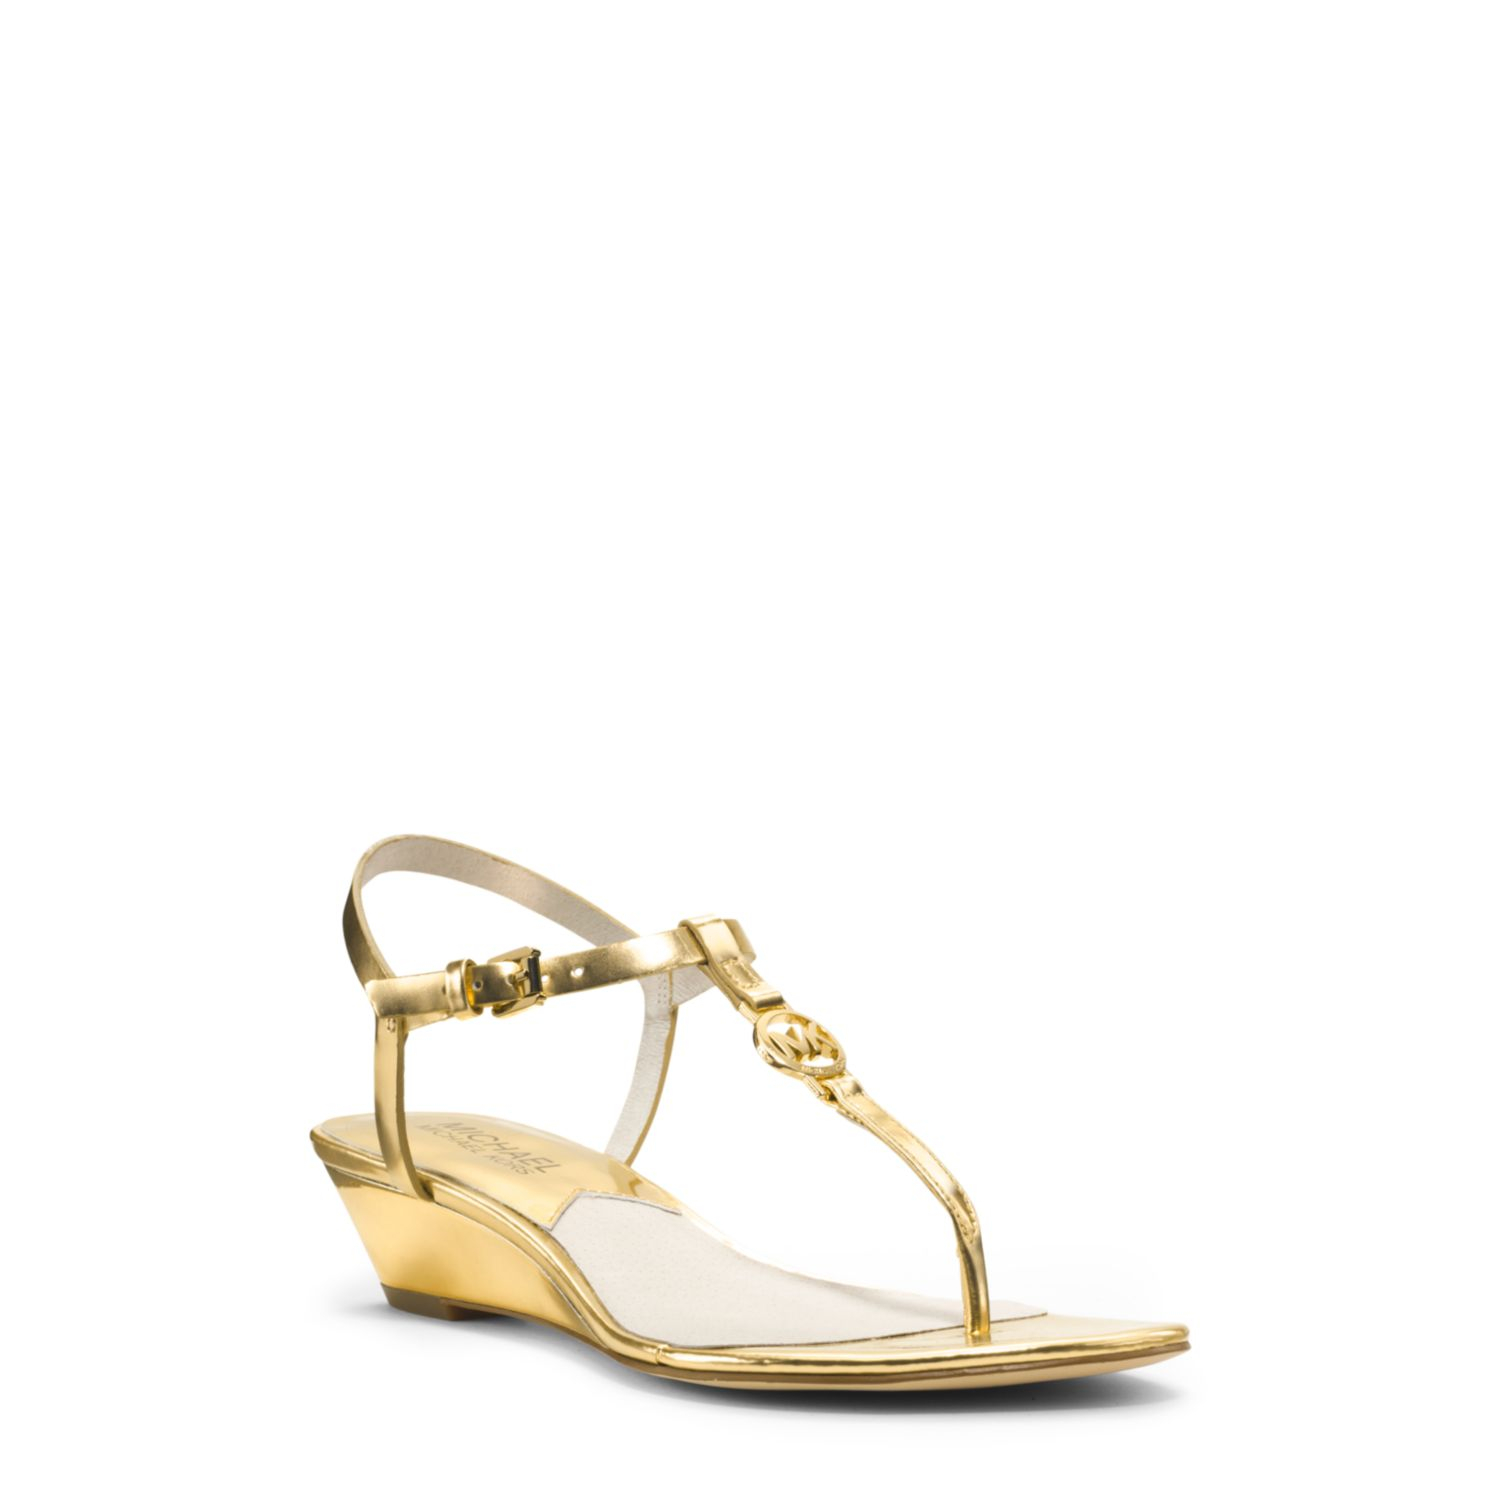 michael kors nora metallic leather wedge sandal in gold lyst